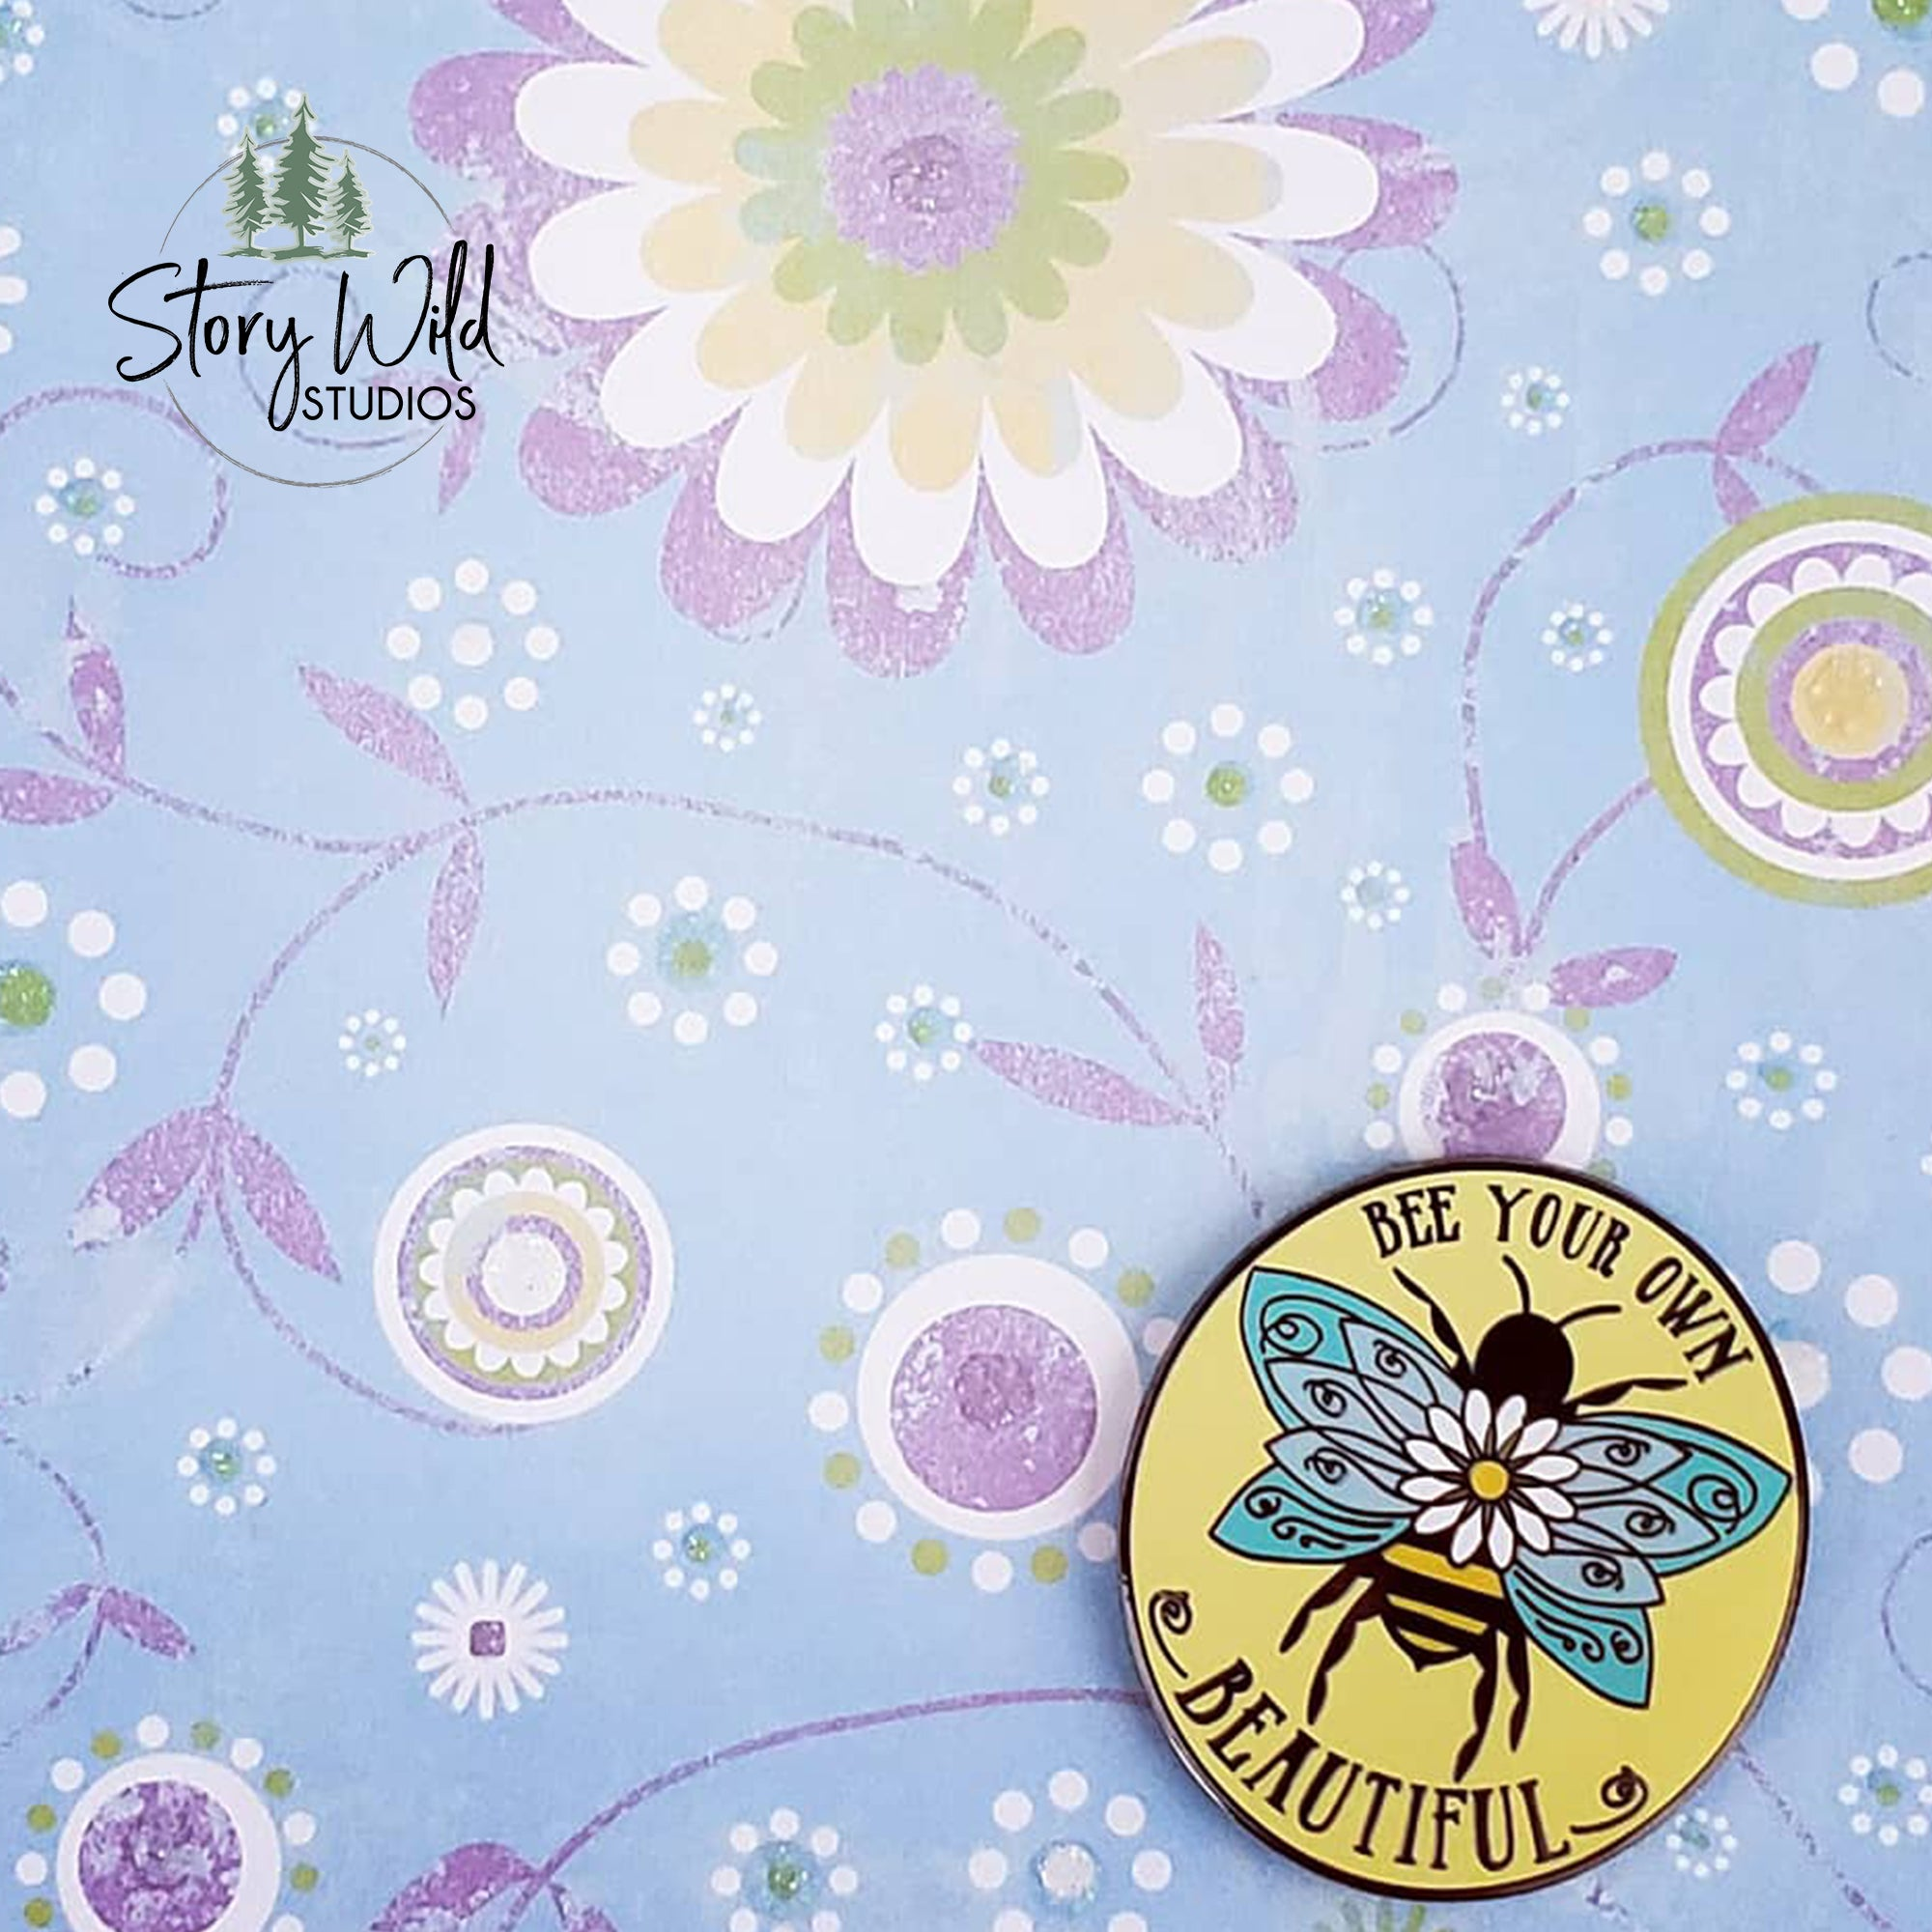 Bee - Your Own - Beautiful - Hard Enamel Pin